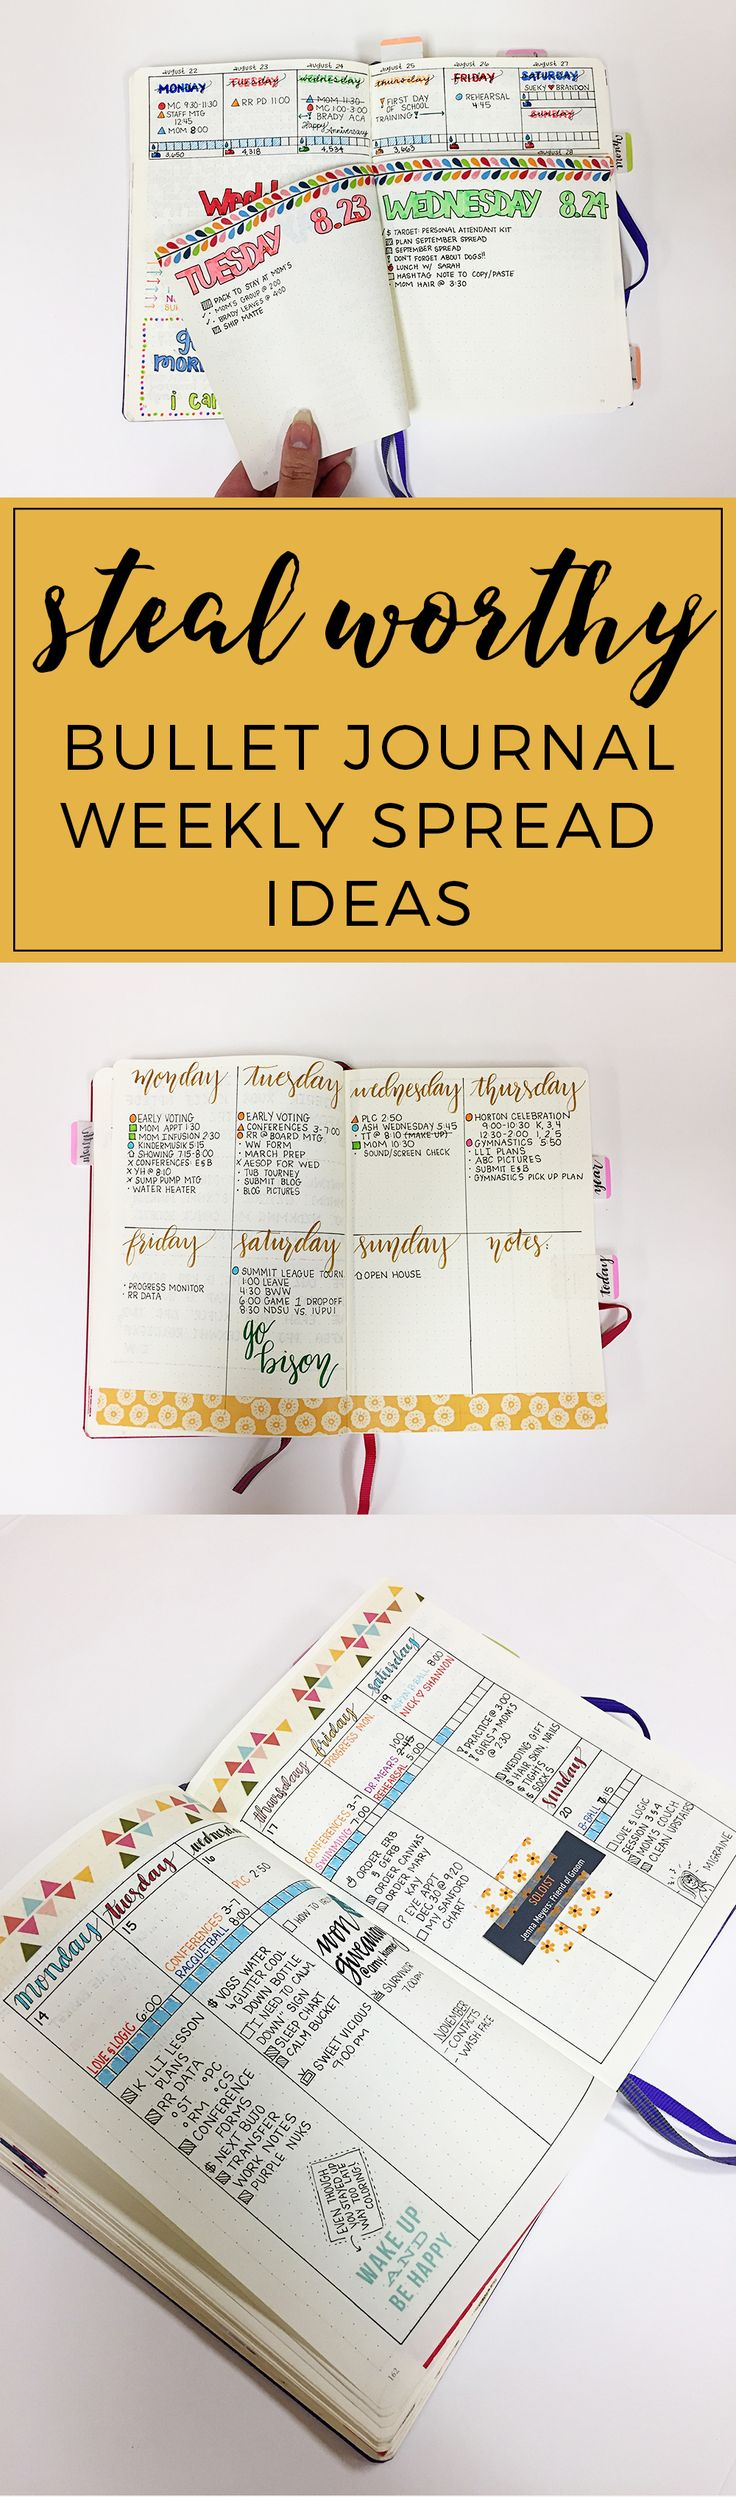 Steal-worthy Bullet Journal Weekly Spread Ideas http://productiveandpretty.com/bullet-journal-weekly-spread-ideas/?utm_campaign=coschedule&utm_source=pinterest&utm_medium=Jennifer%20Grayeb&utm_content=Steal-worthy%20Bullet%20Journal%20Weekly%20Spread%20Ideas